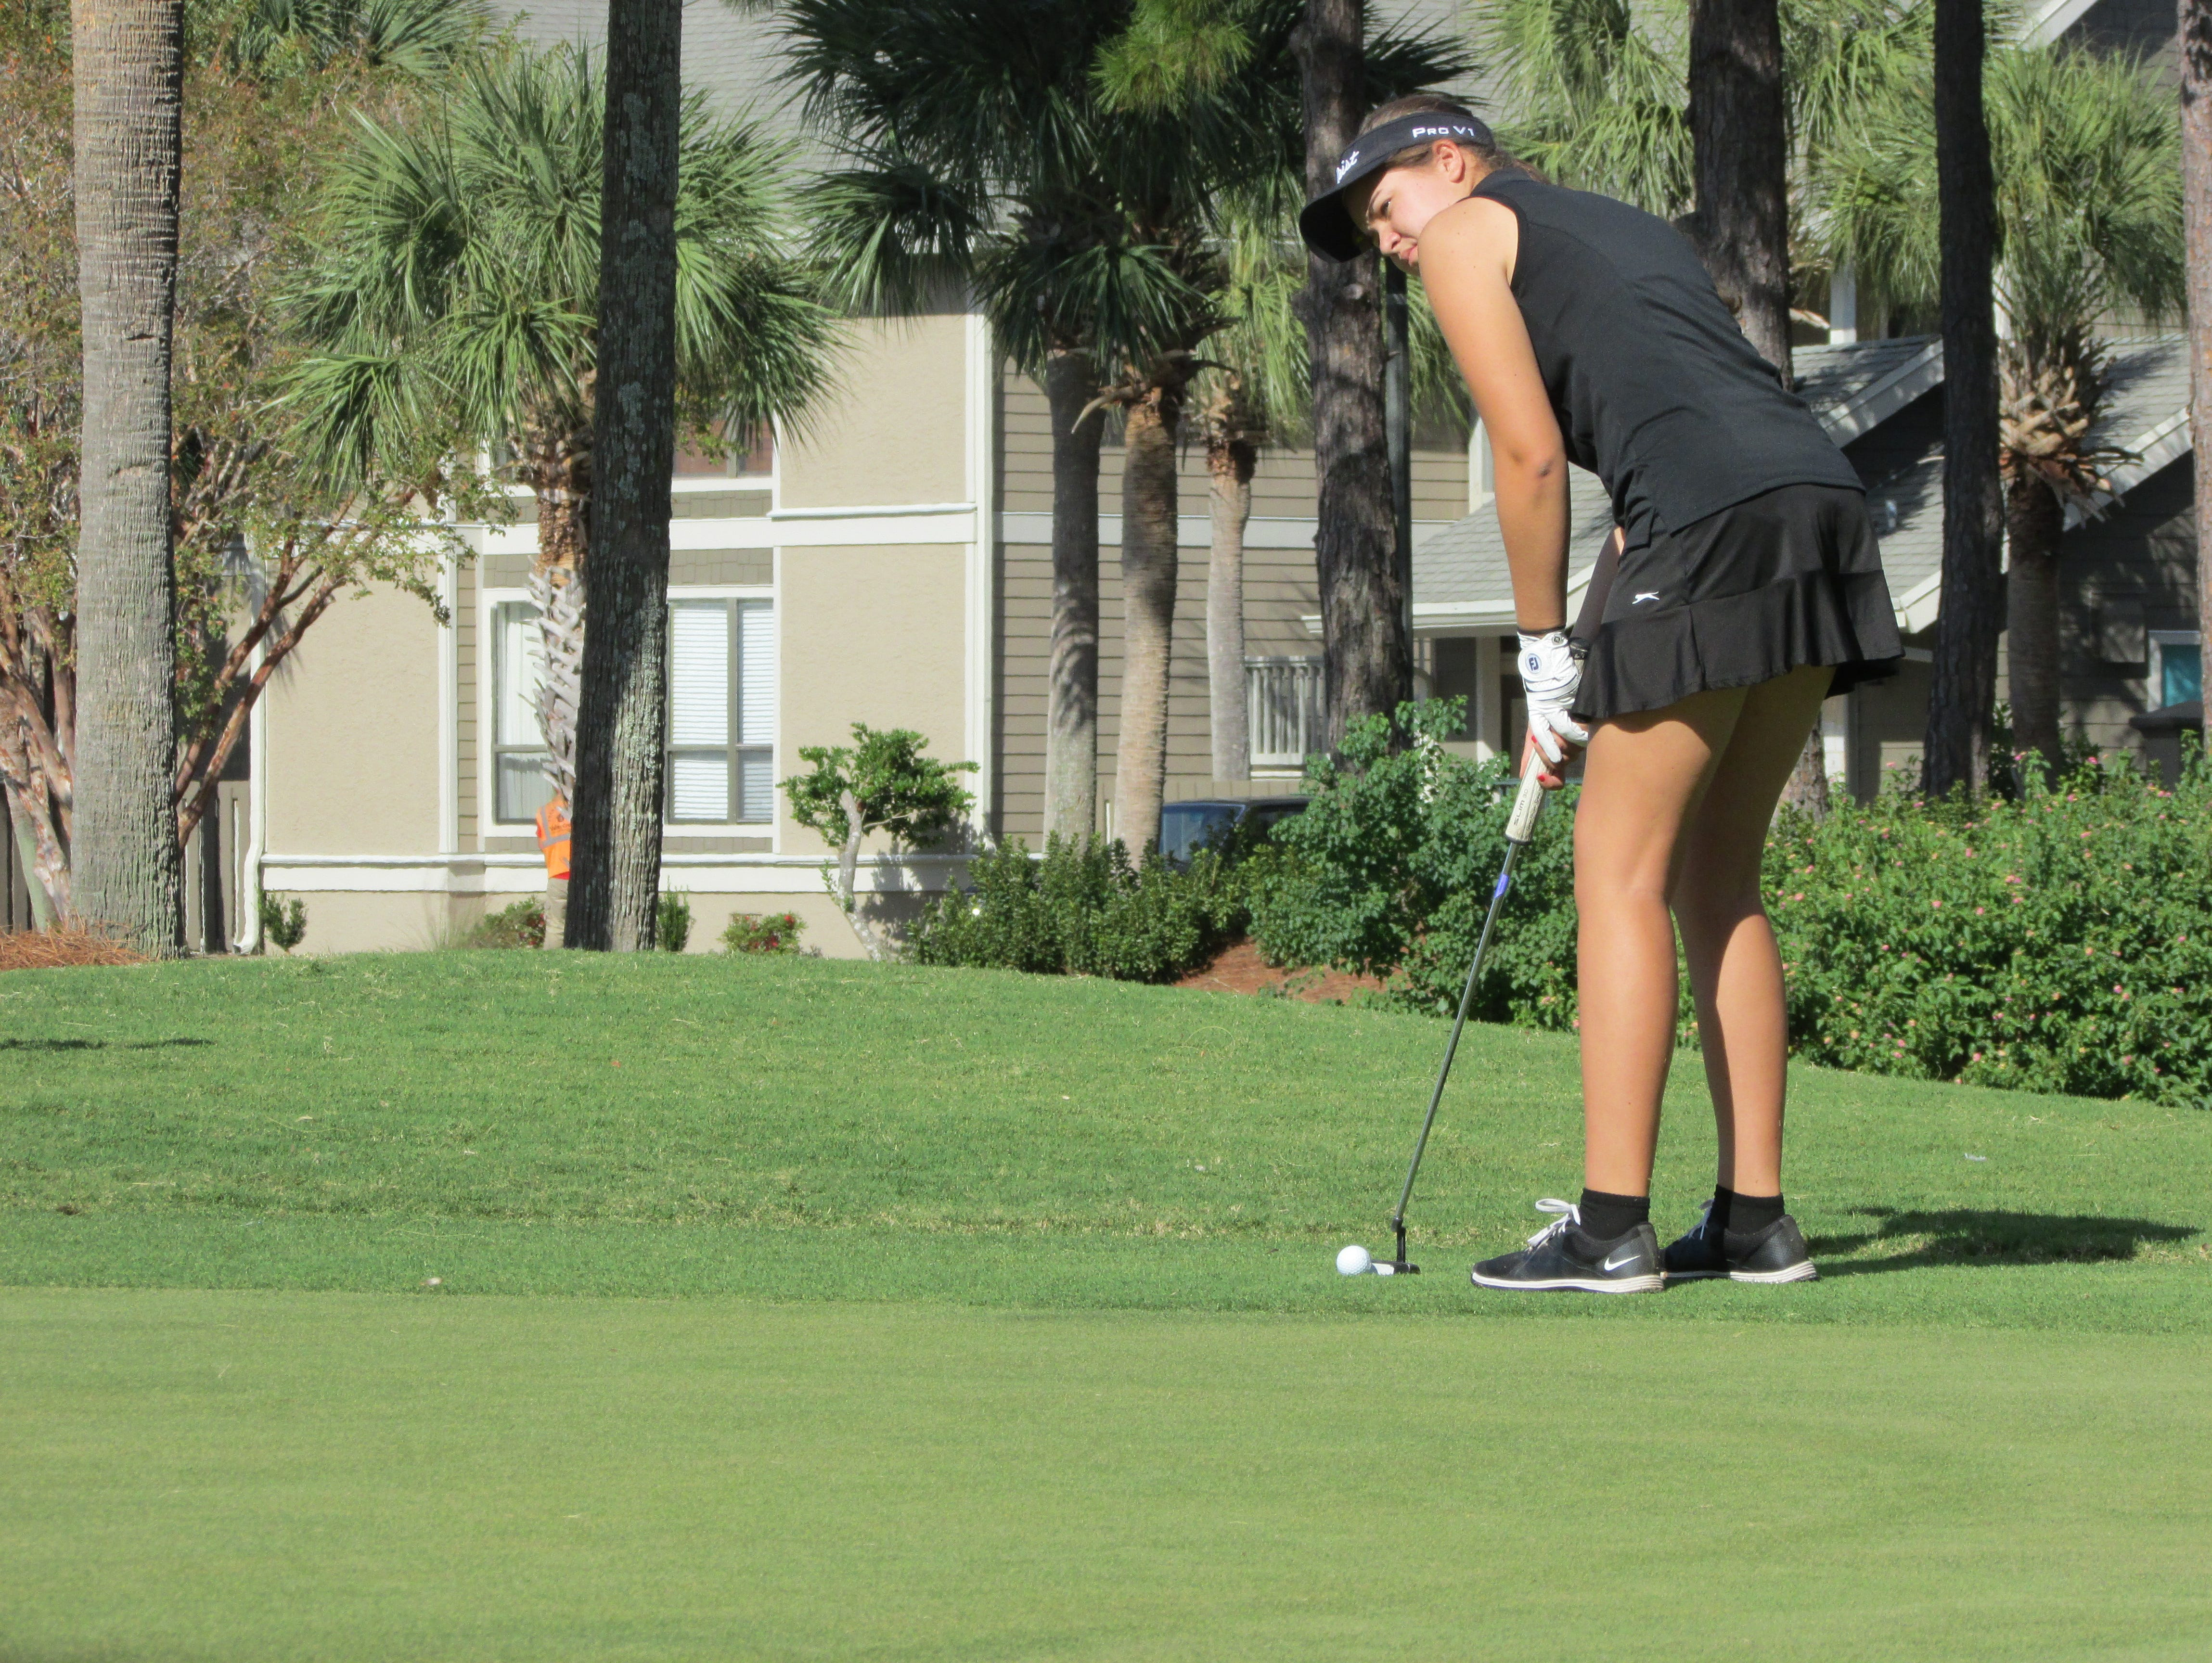 Abby Herrmann prepares for a putt on No. 16 at The Links in Sandestin.